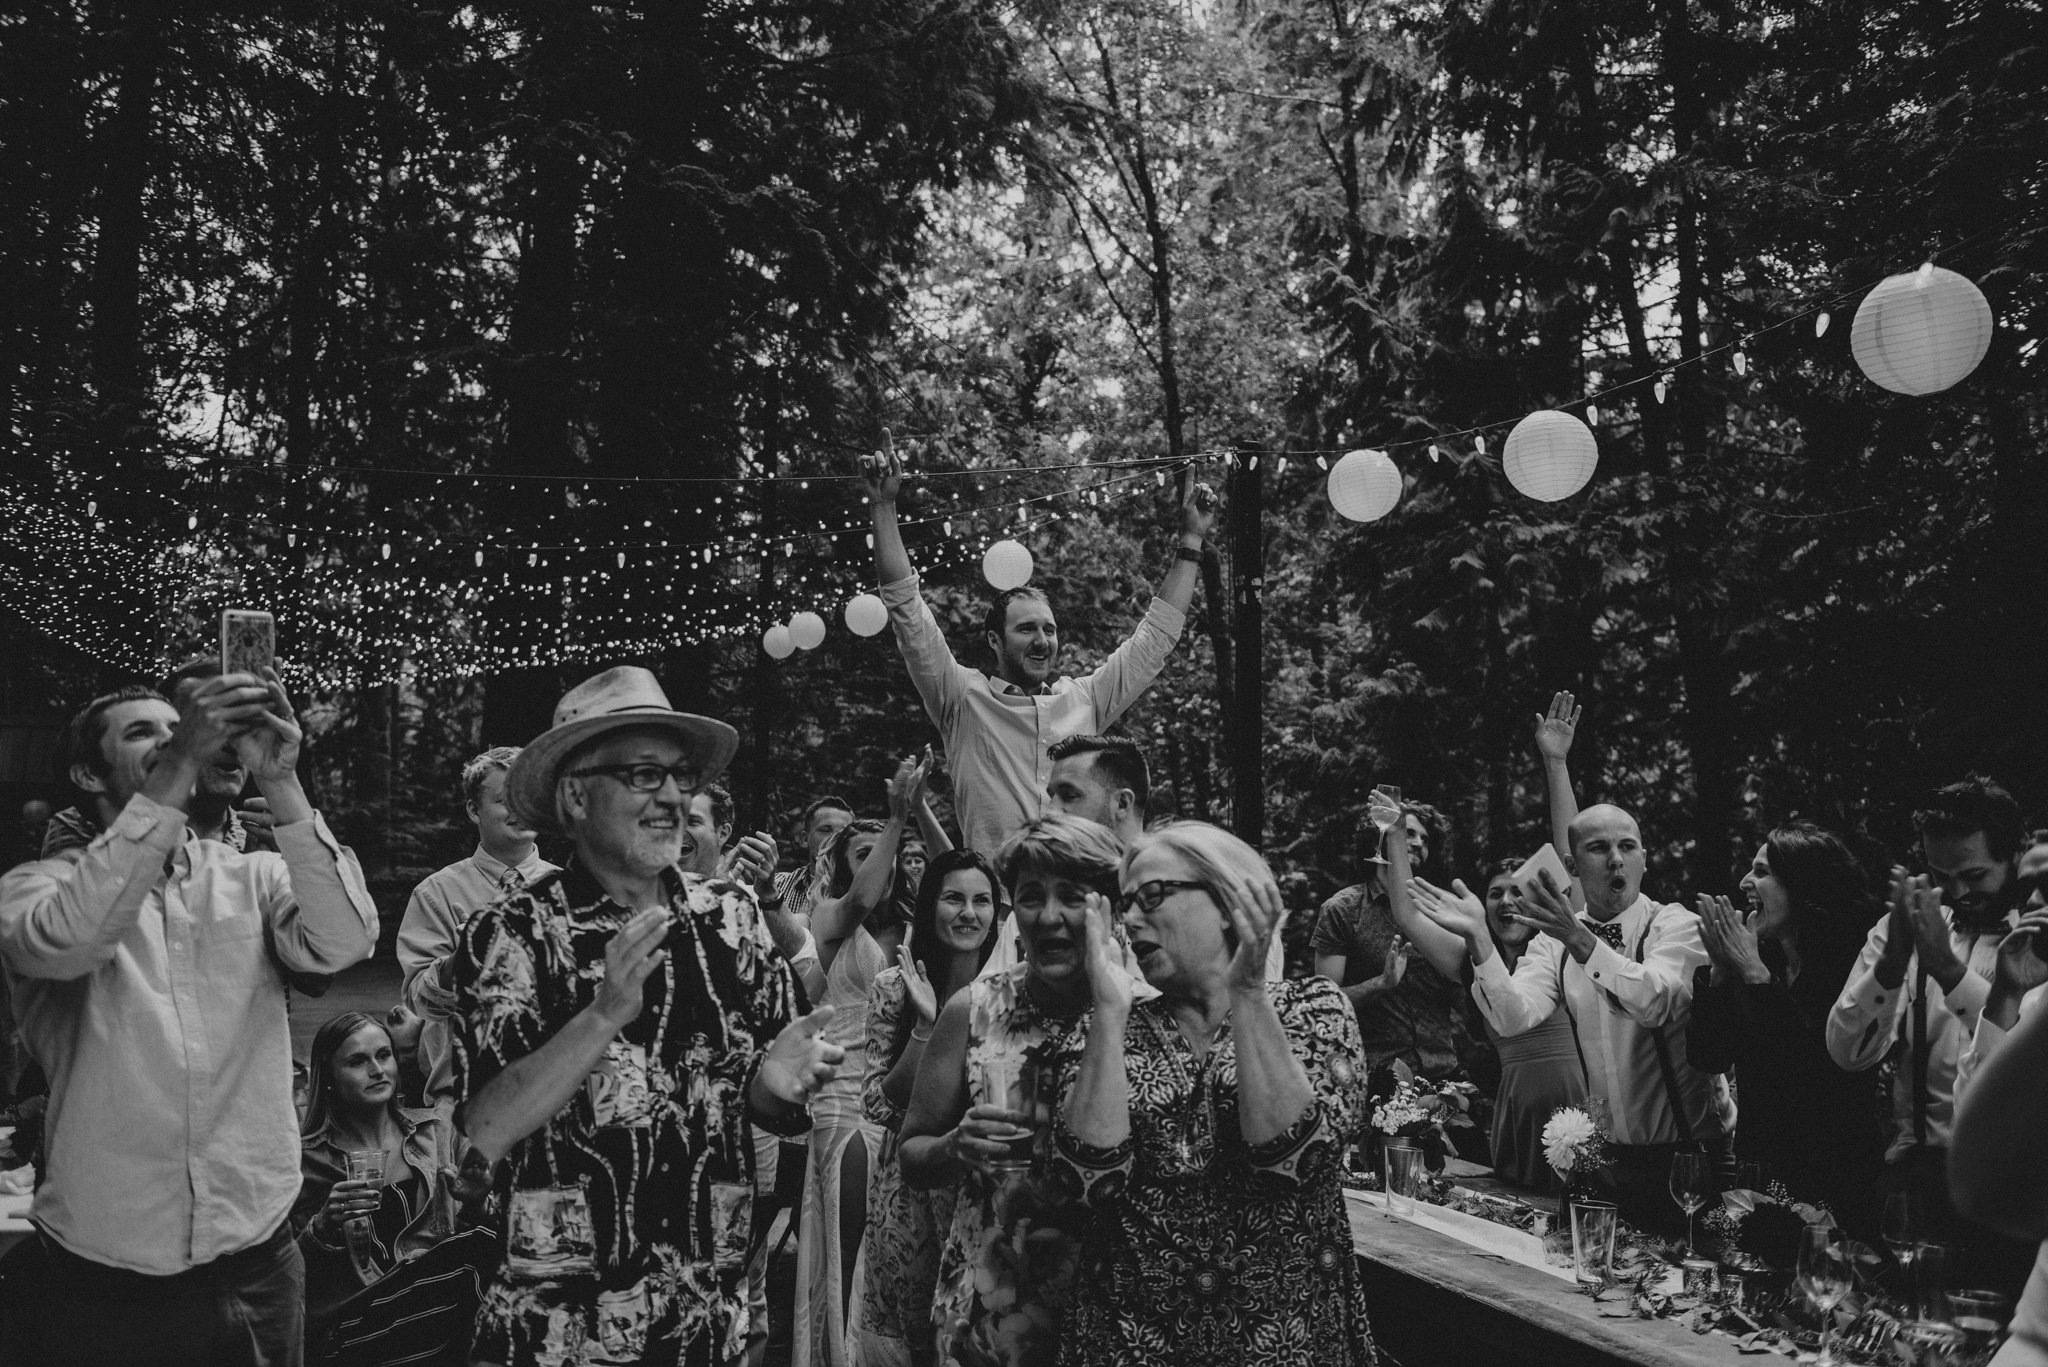 intimate-boho-campfire-wedding-shangri-la-on-the-green-seattle-wedding-photographer-caitlyn-nikula-photography-117.jpg